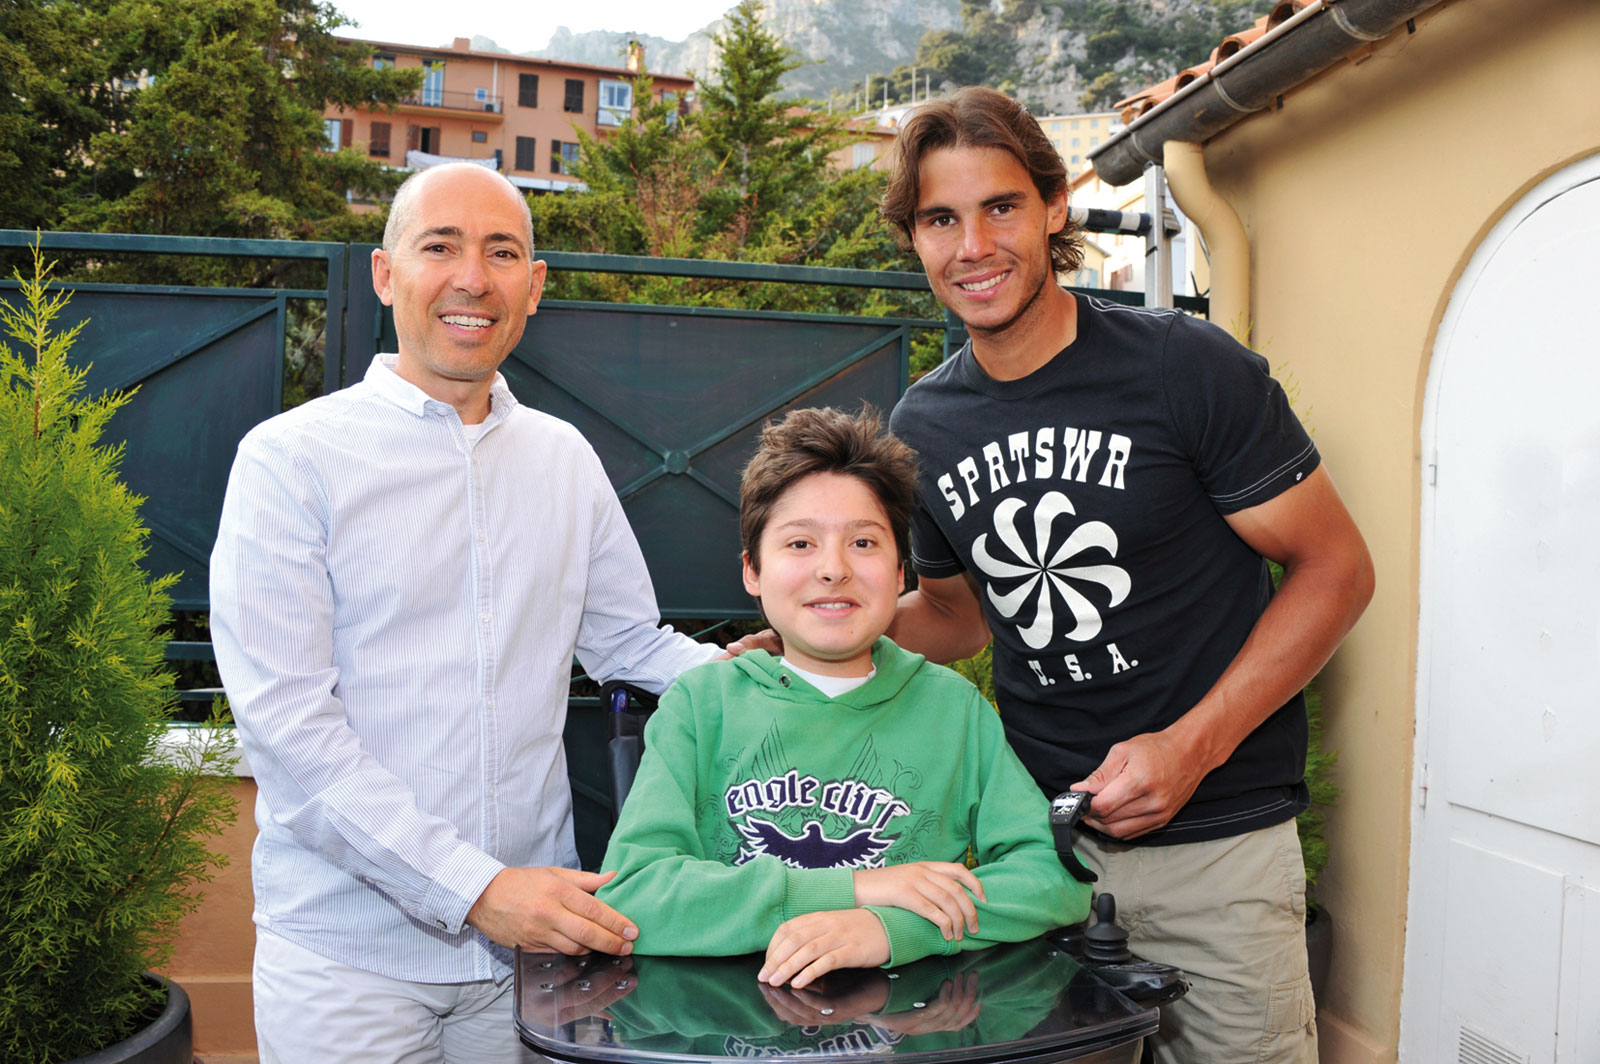 Luc Pettavino, Paul Pettavino and Rafael Nadal